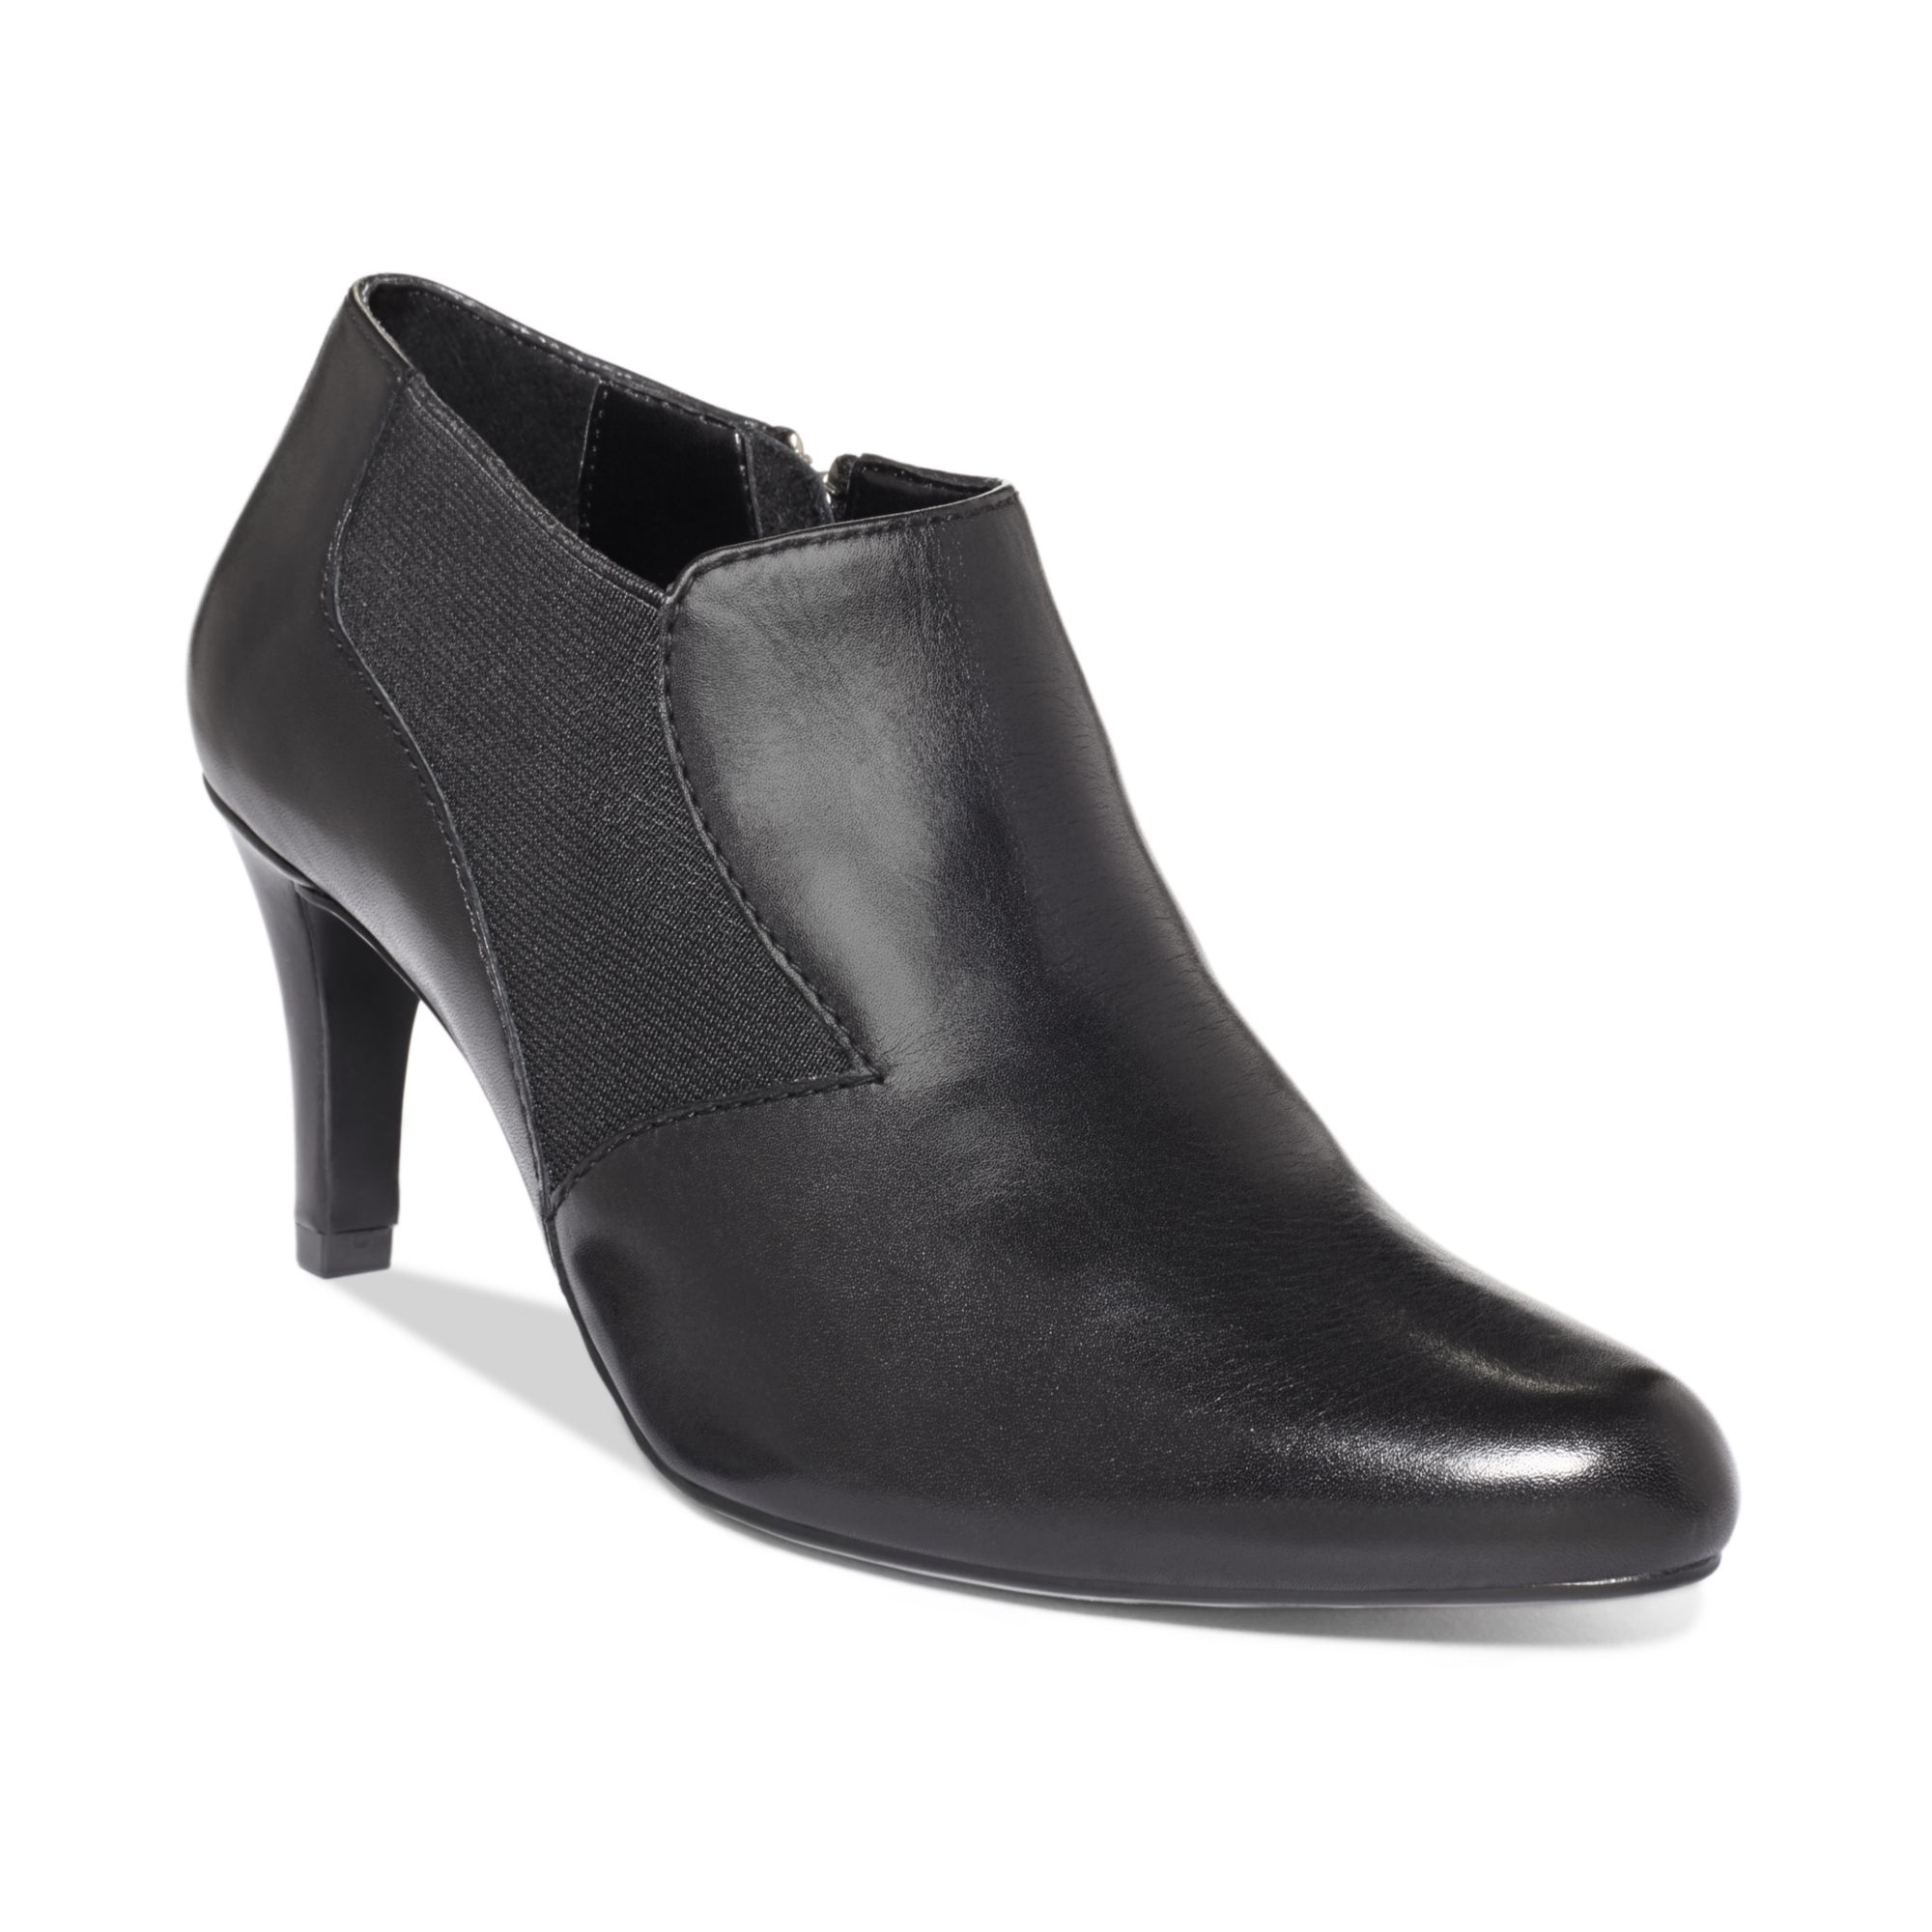 Nada Mobile App >> Lyst - Ellen Tracy Carlton Dress Booties in Black